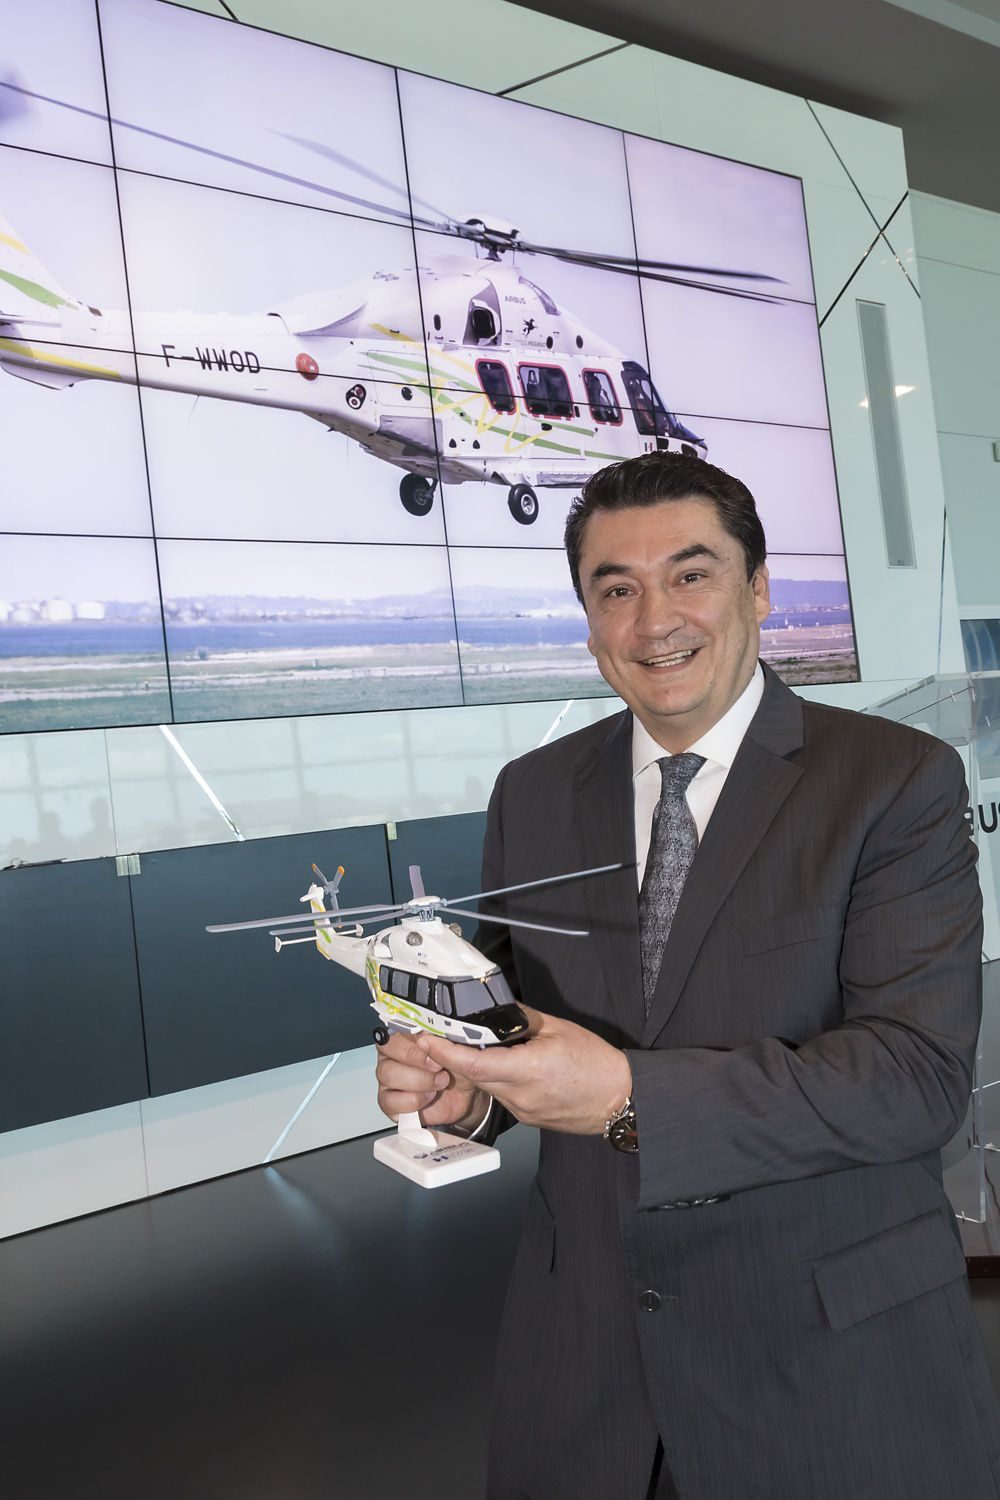 José Erosa, Operations director of H175 operator Pegaso